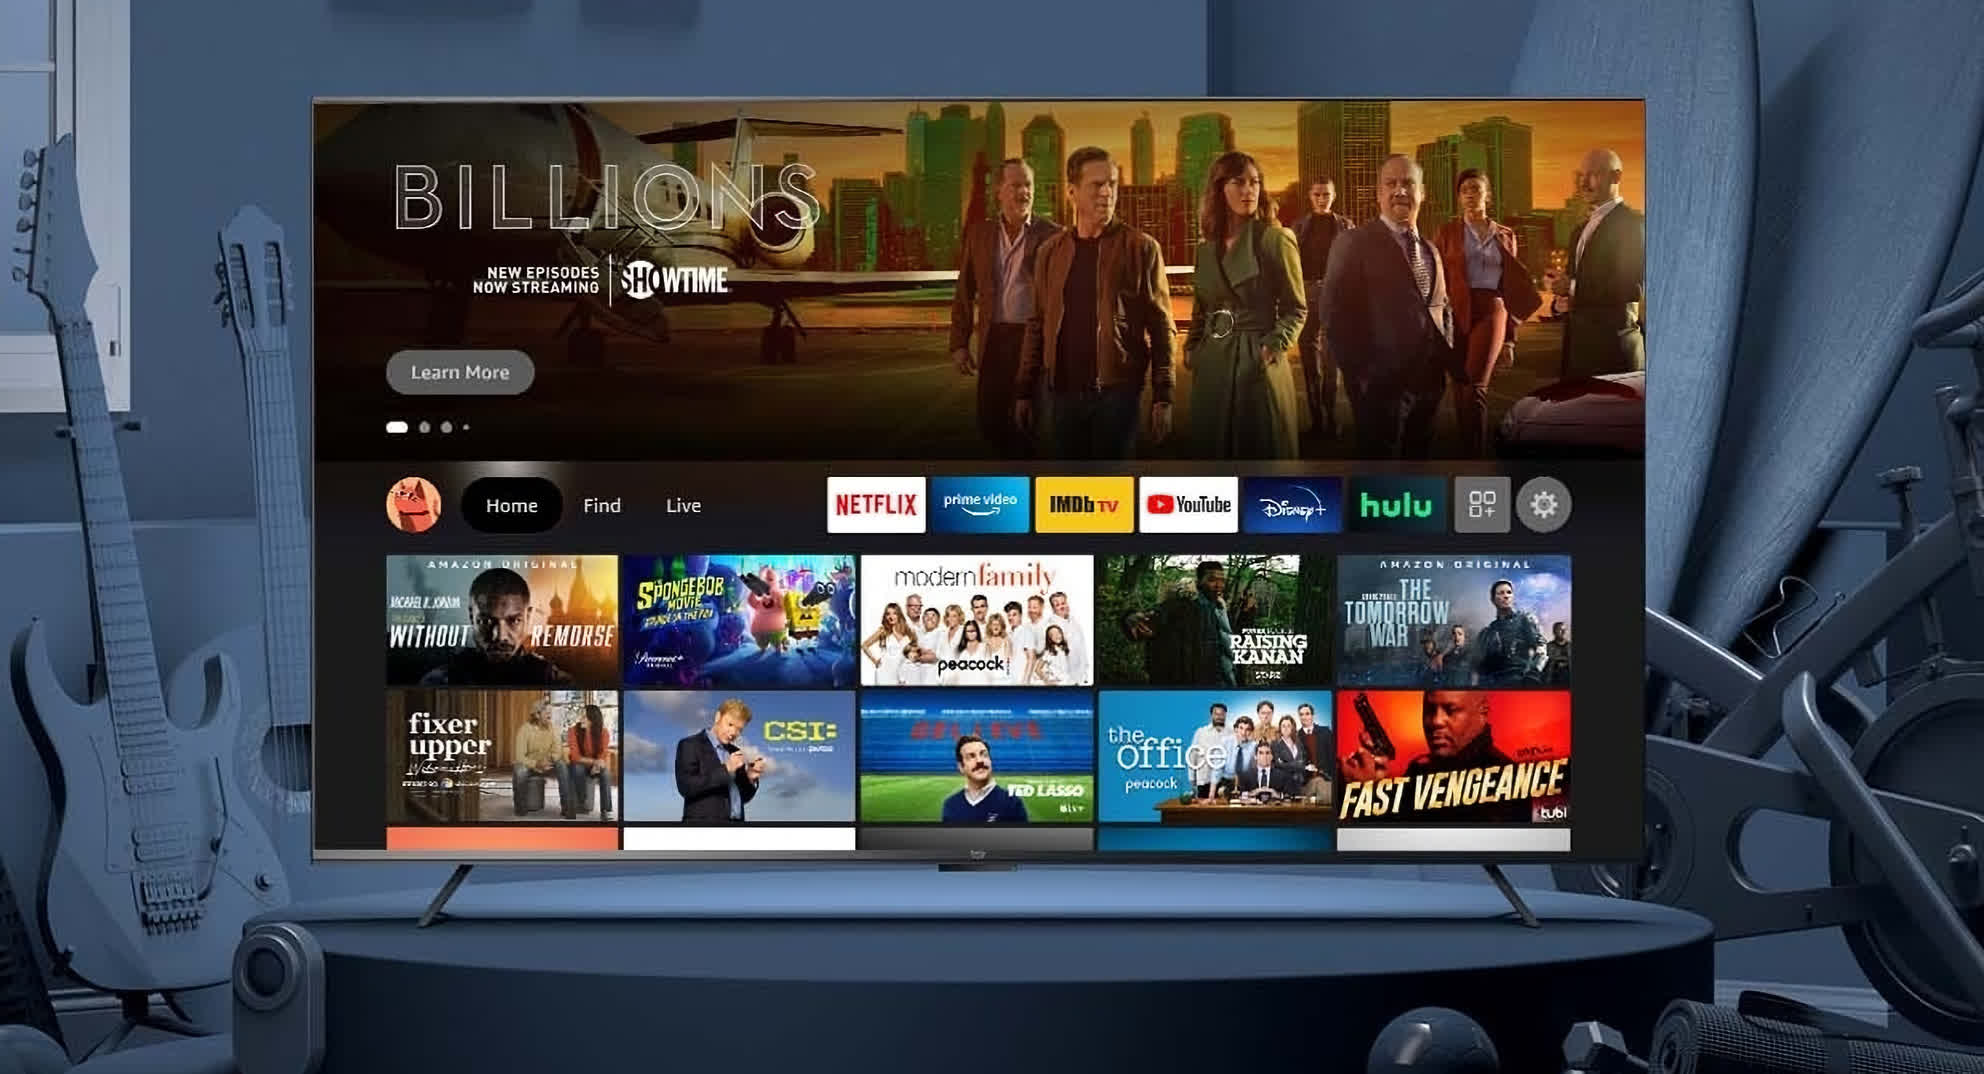 Amazon announces its first branded TV sets, the Omni Series and the 4-Series